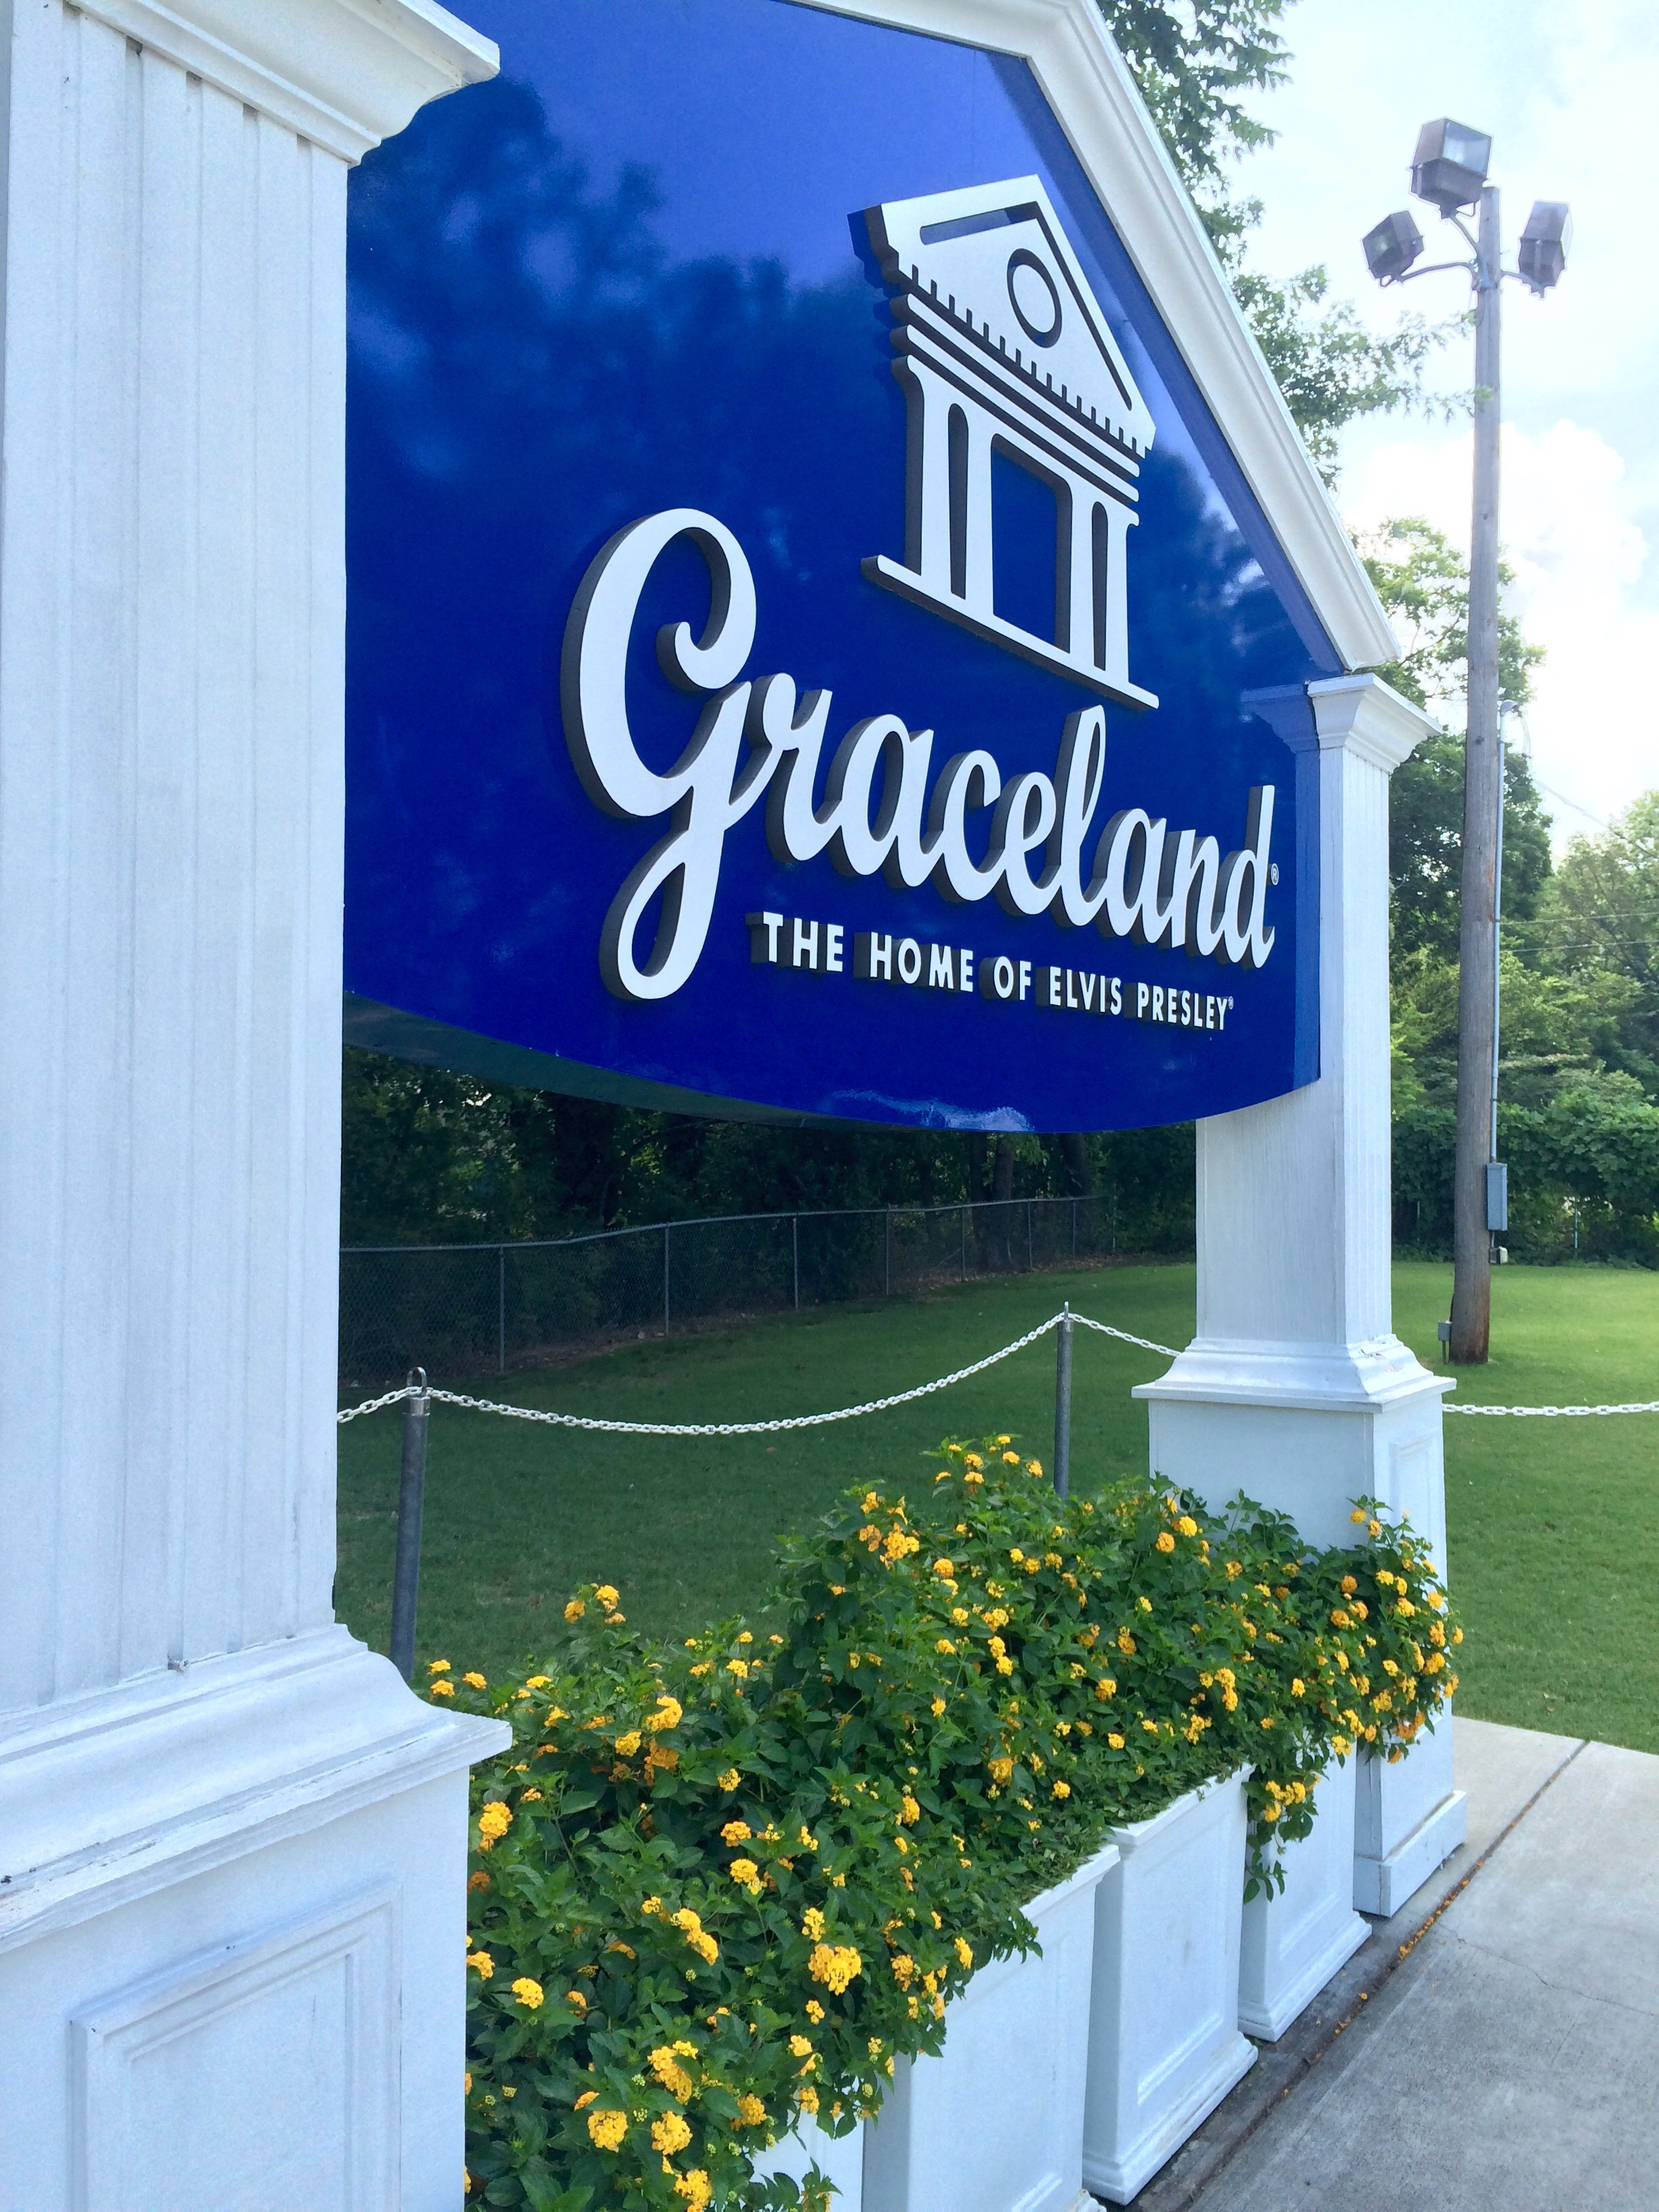 Graceland in Memphis